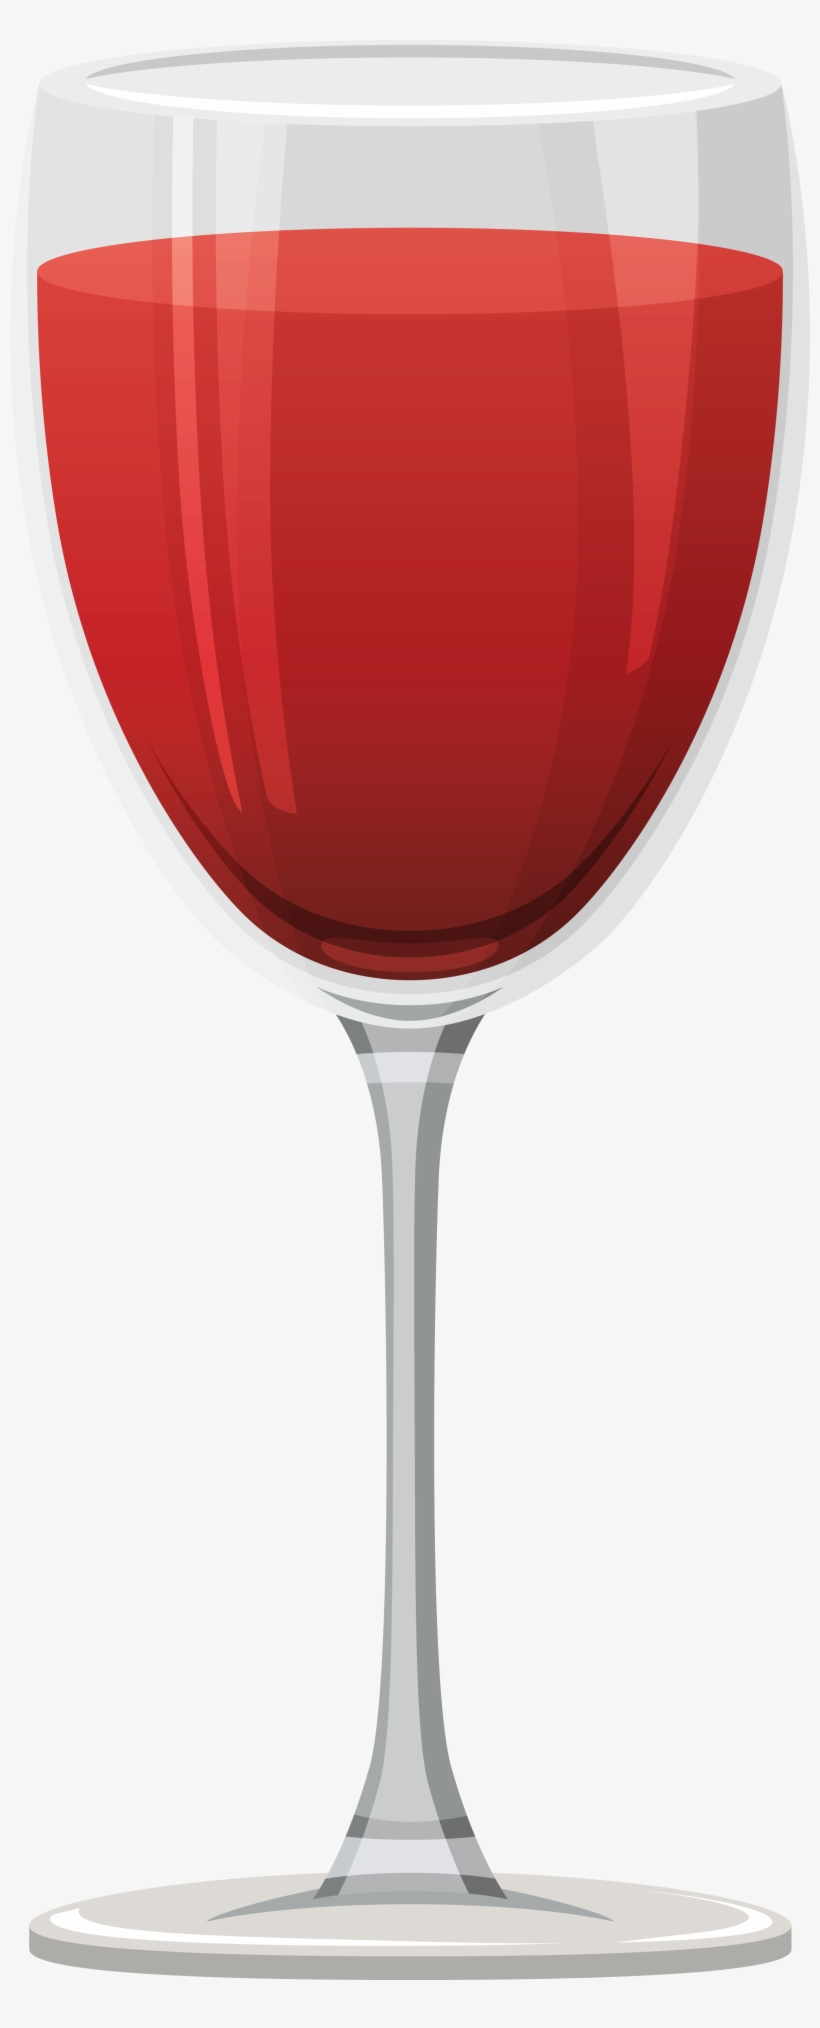 medium resolution of wine glasses clipart transparent background wine glass clipart png